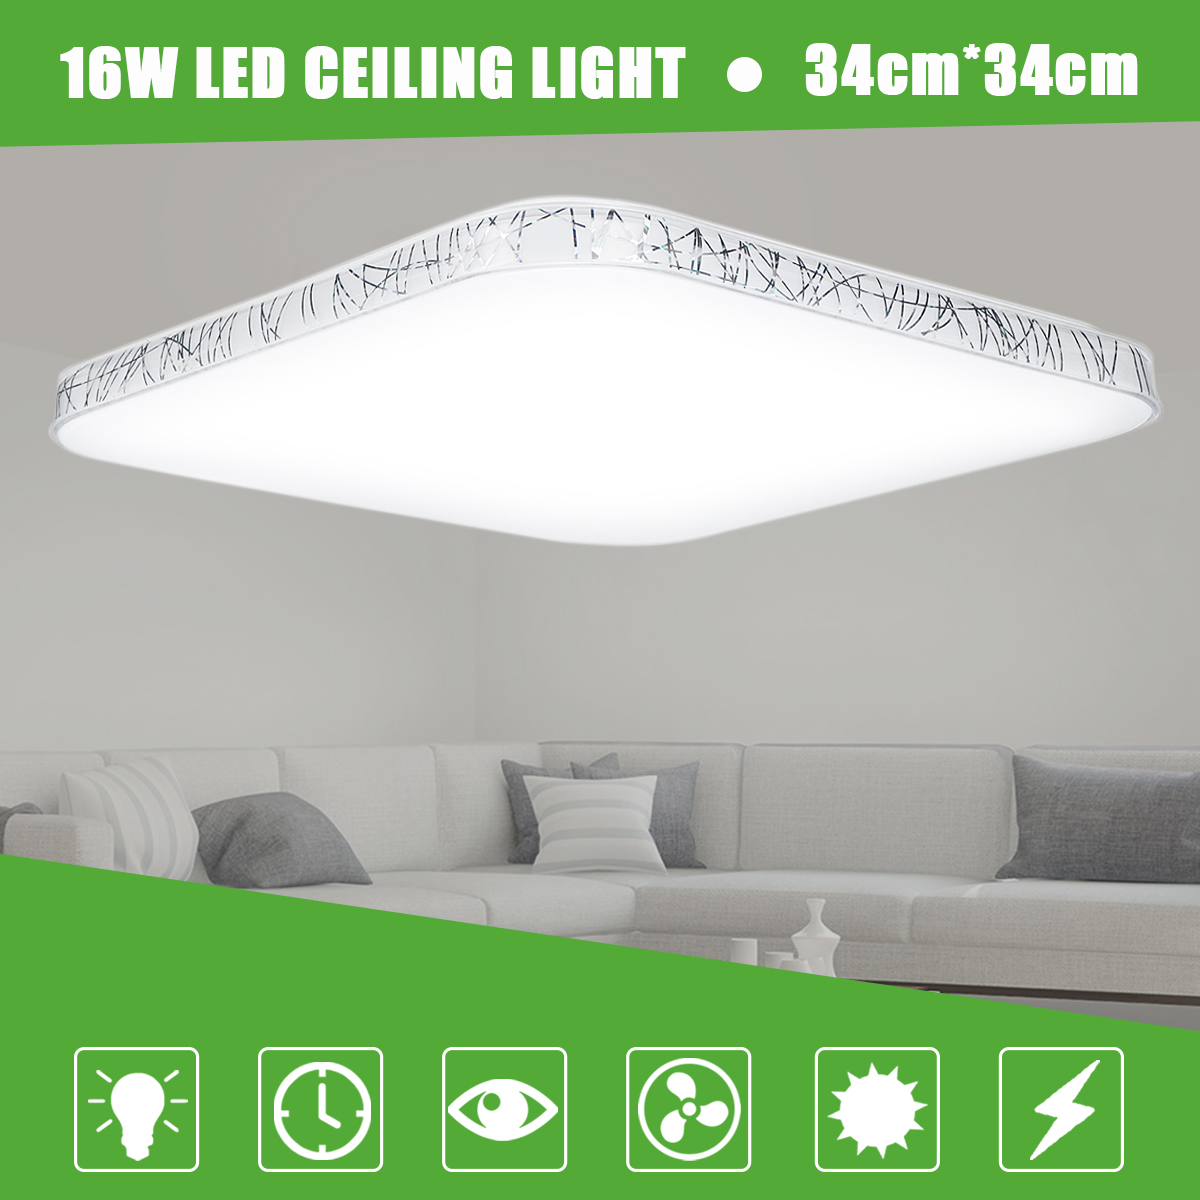 16W 3500K Natrual White Energy Efficient LED Ceiling Light Flush Ceiling Mount lighting Fixture For Kitchen Bathroom Dining Room mlsled mls xd32 16w 16w 1100lm 160 smd 3014 led white ceiling light white 100 240v